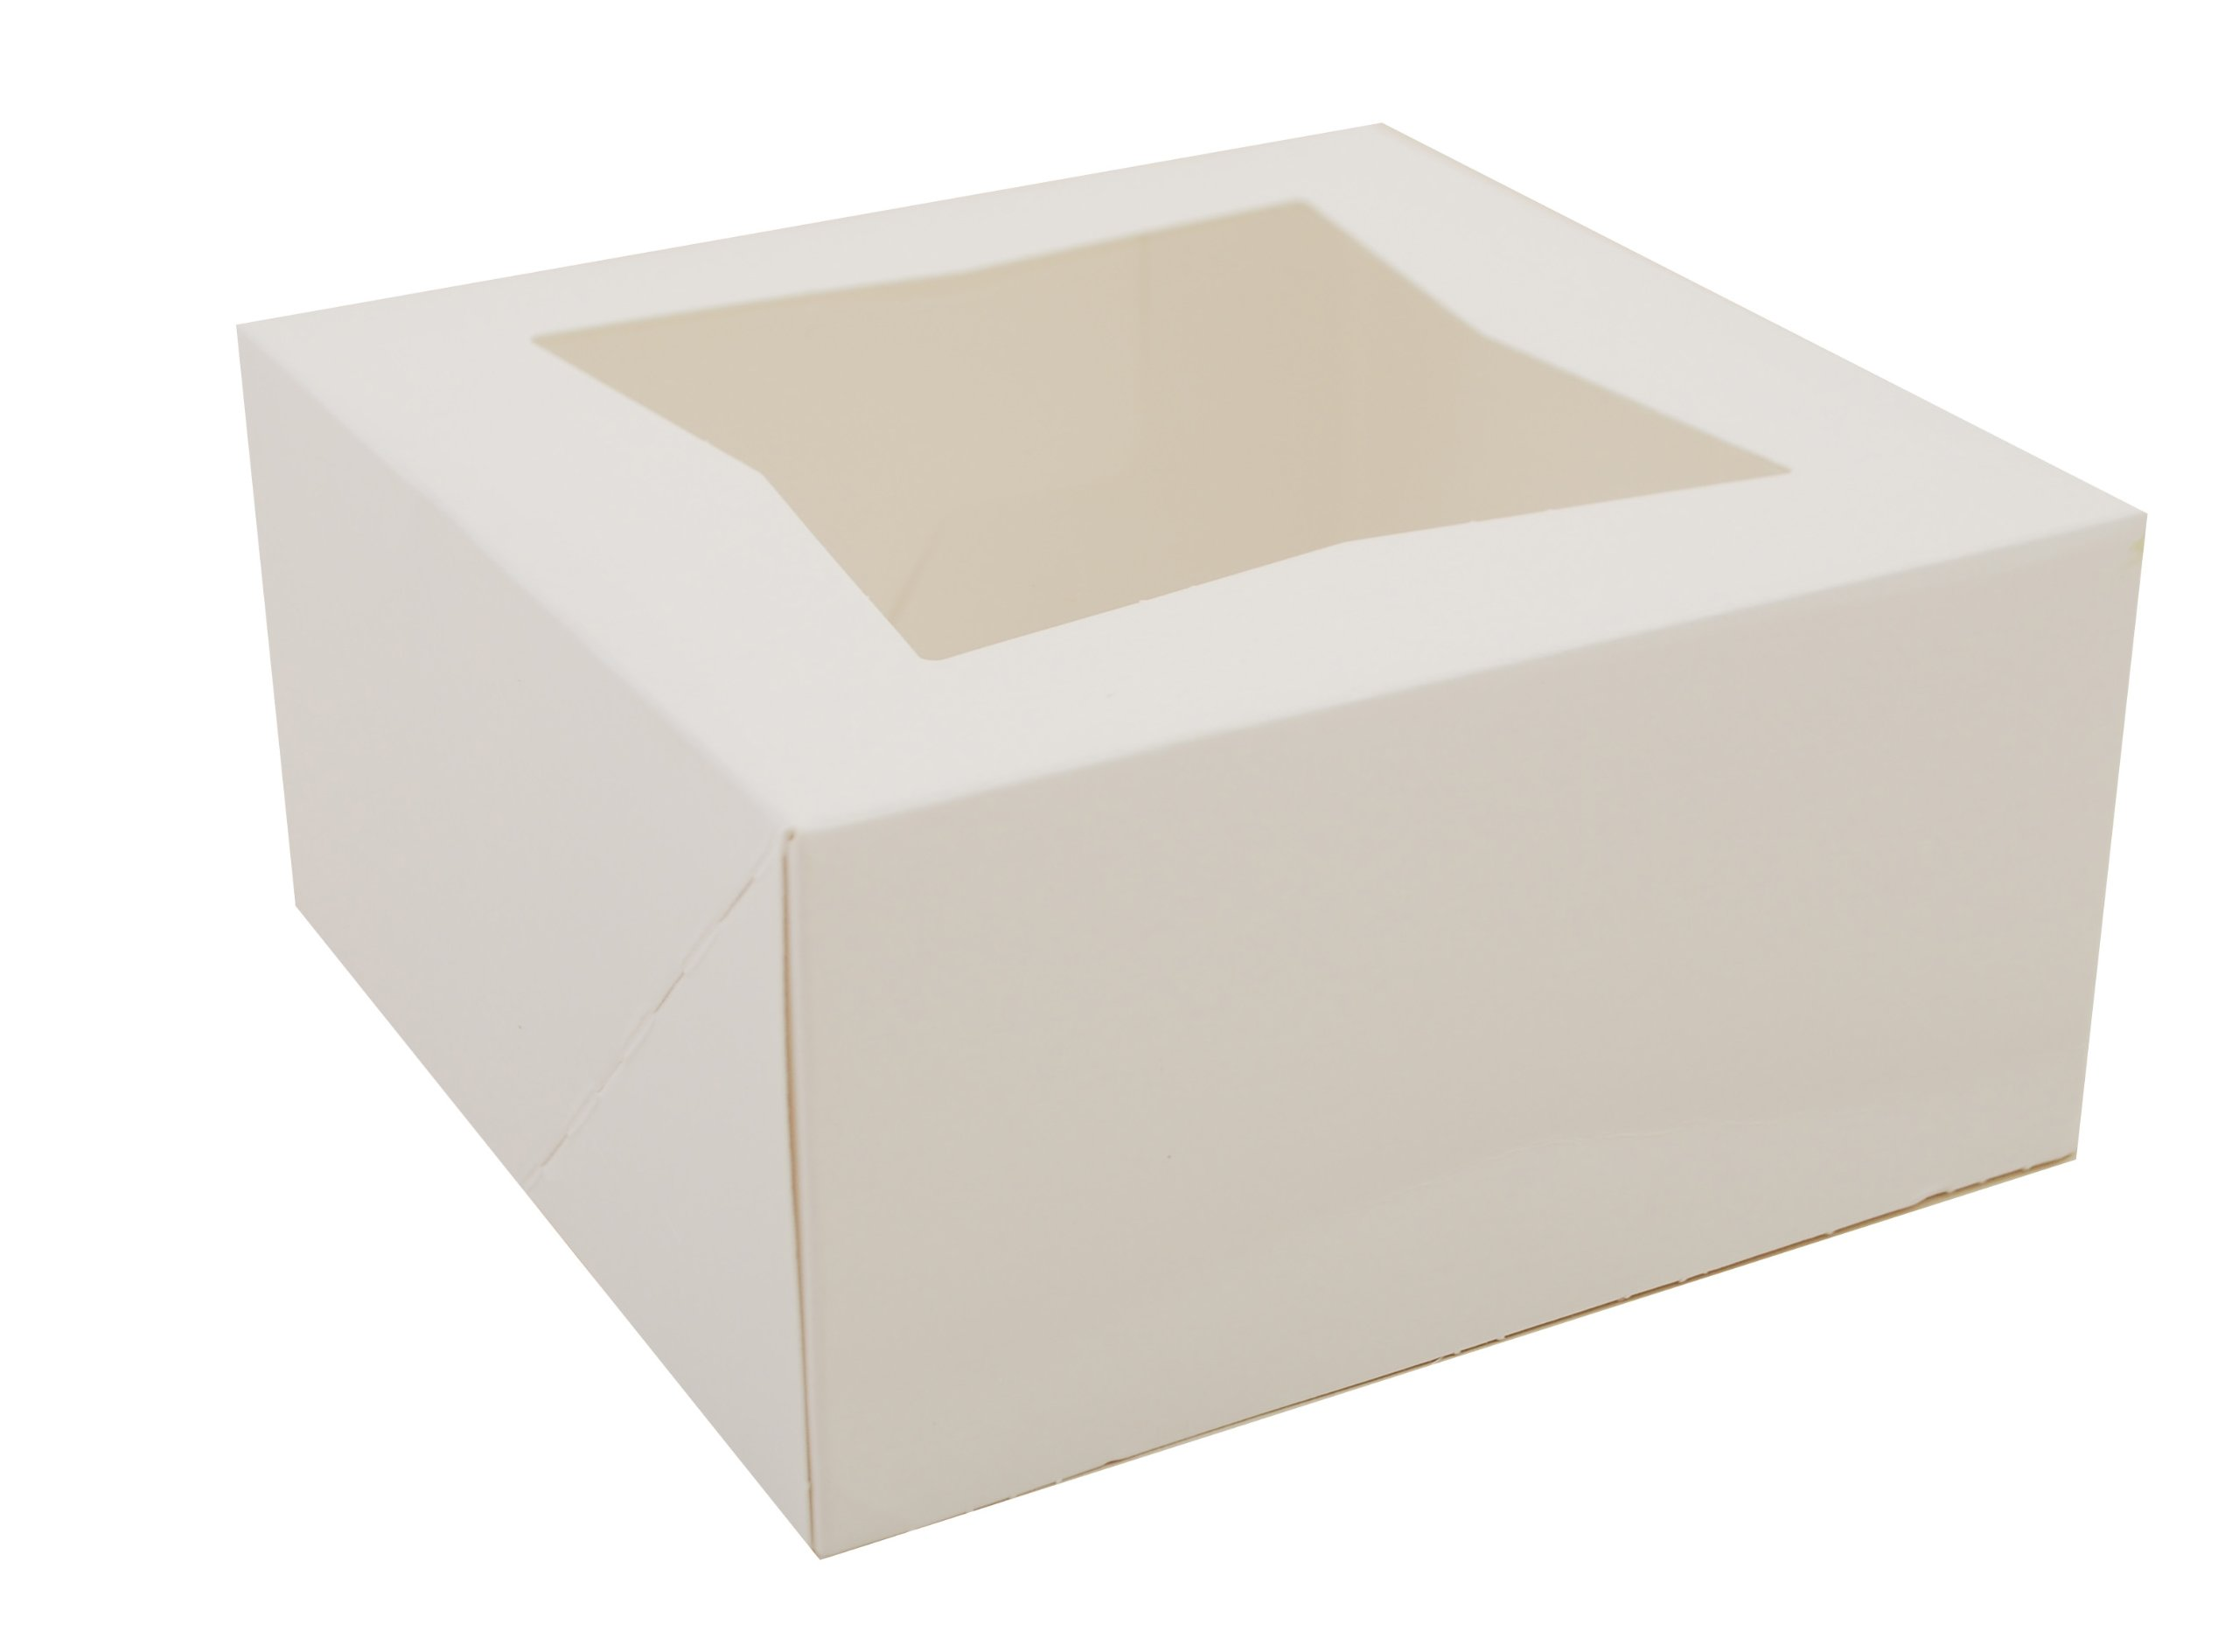 Southern Champion Tray 24023 Paperboard White Window Bakery Box, 6'' Length x 6'' Width x 3'' Height (Case of 200) by Southern Champion Tray